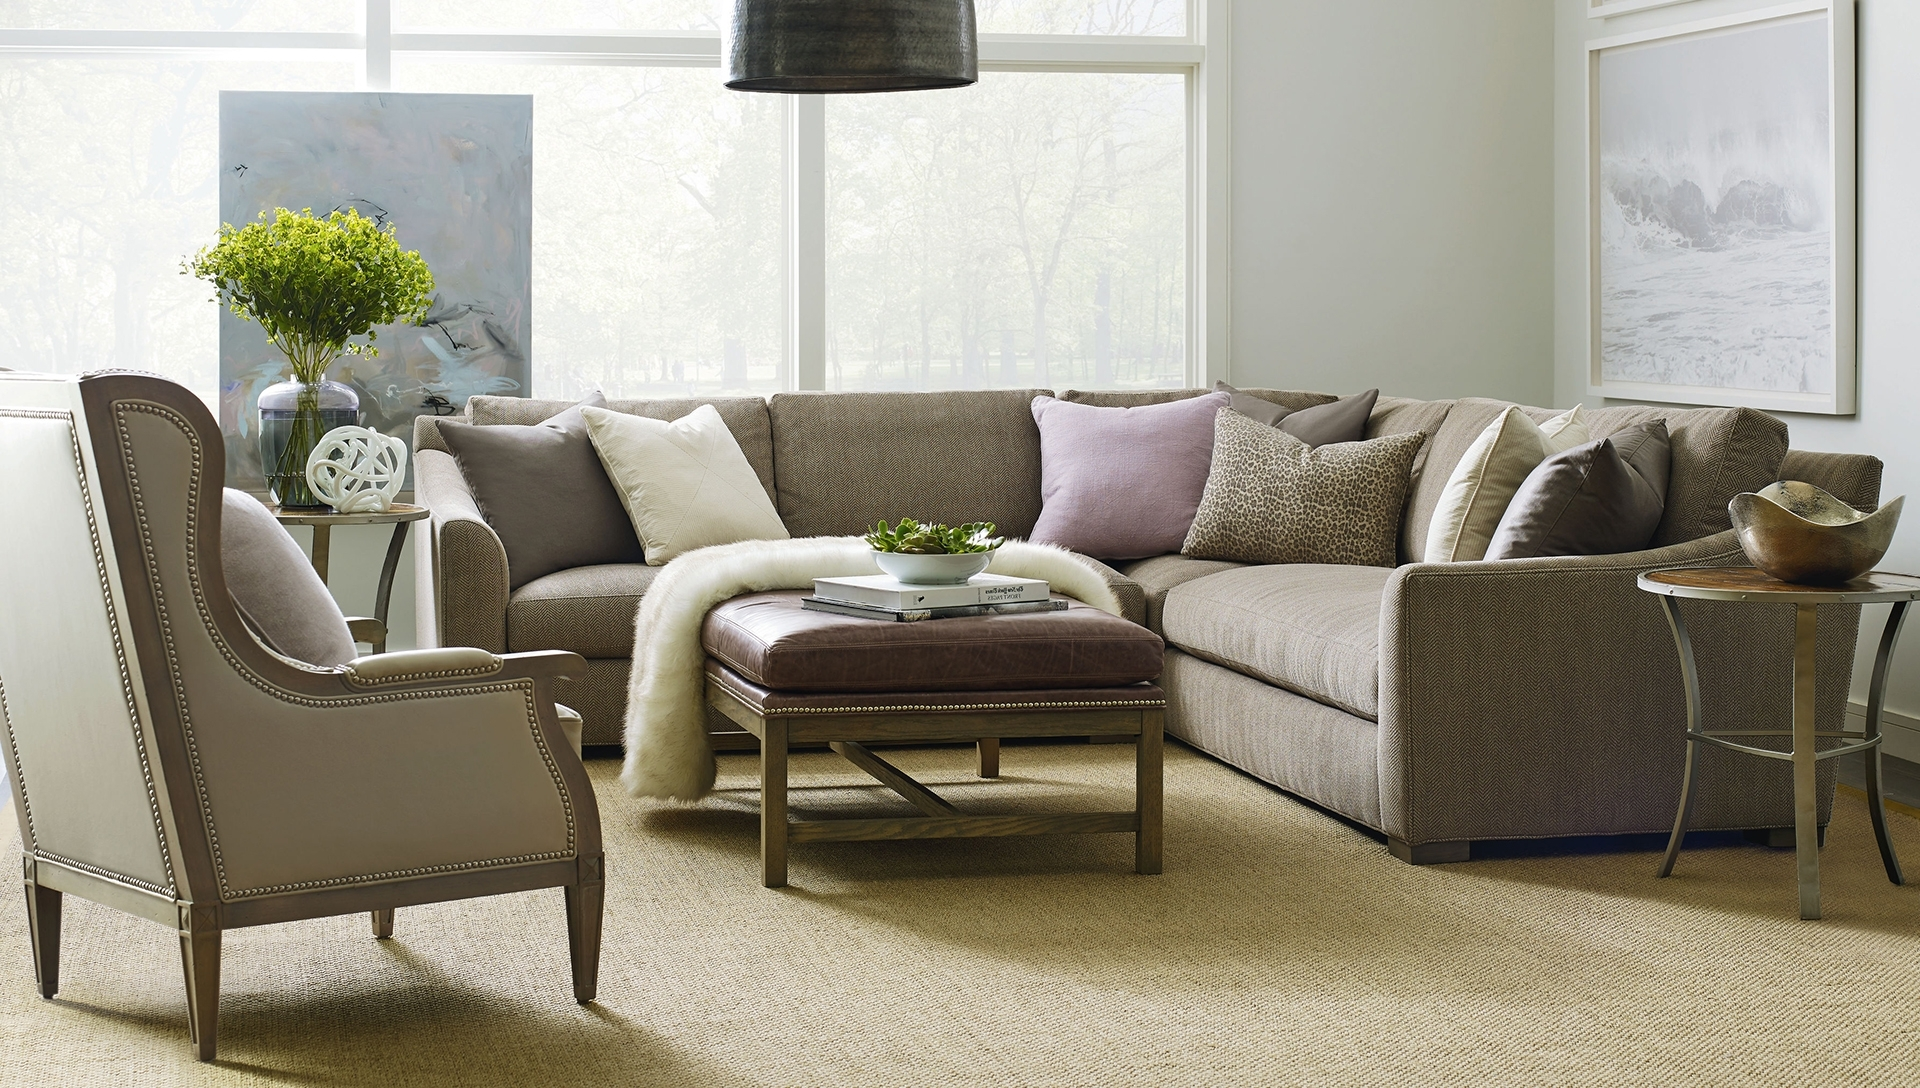 Well Liked Cr Laine Furniture In Grand Rapids Mi Sectional Sofas (View 15 of 20)